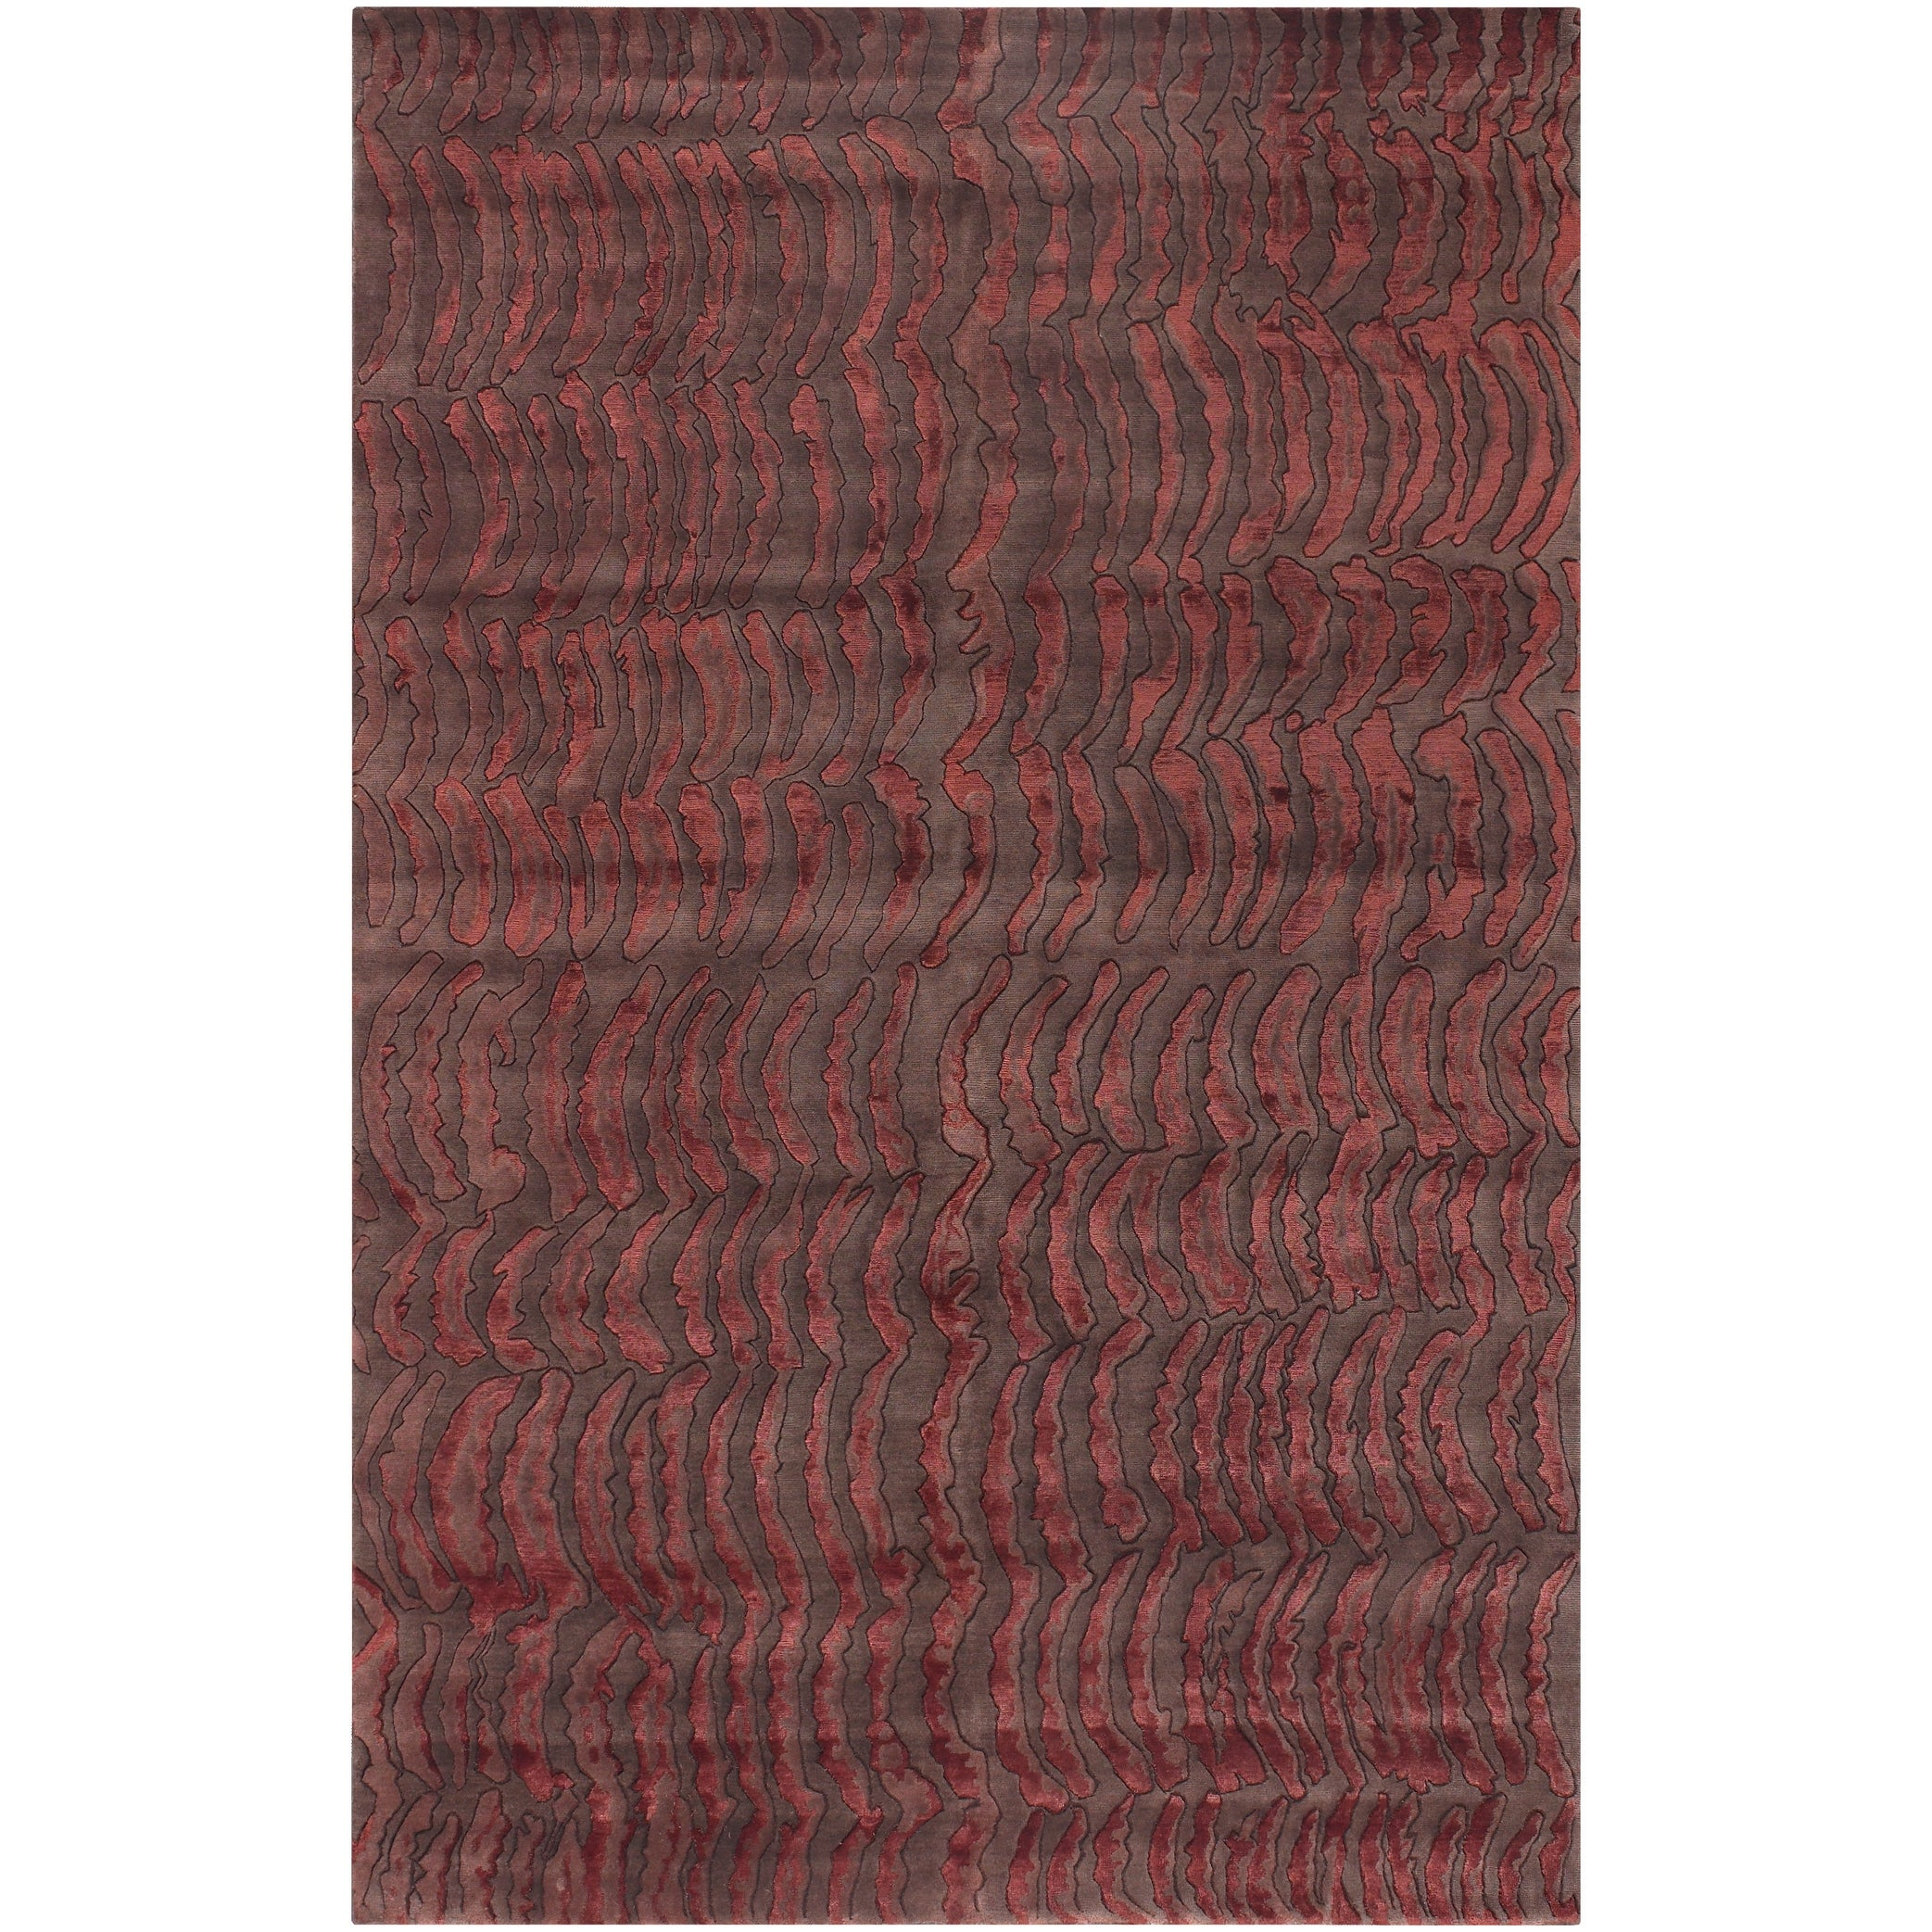 Hand-knotted Royal Abstract Design Wool Area Rug - 9' x 13'